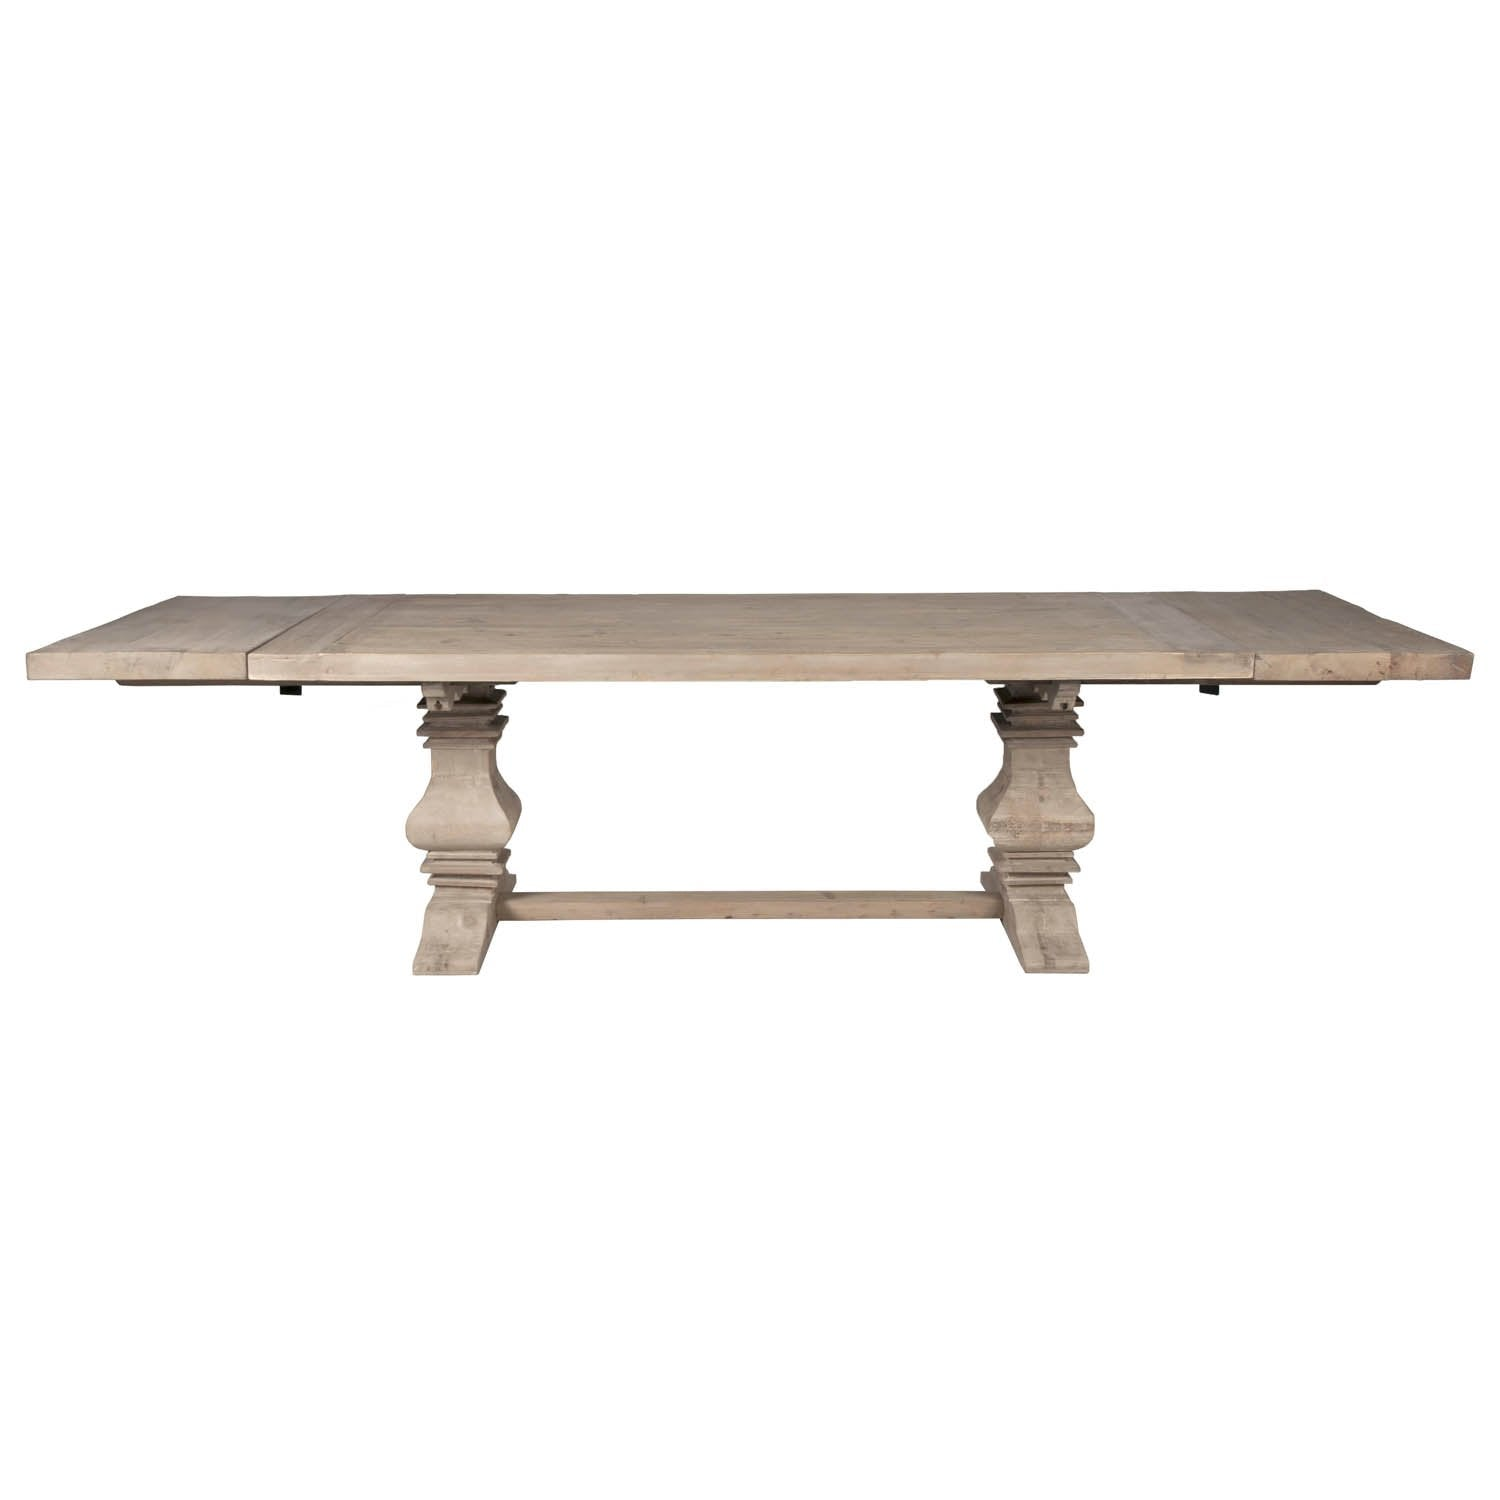 Monastery Extension Dining Table in Smoke Gray Pine